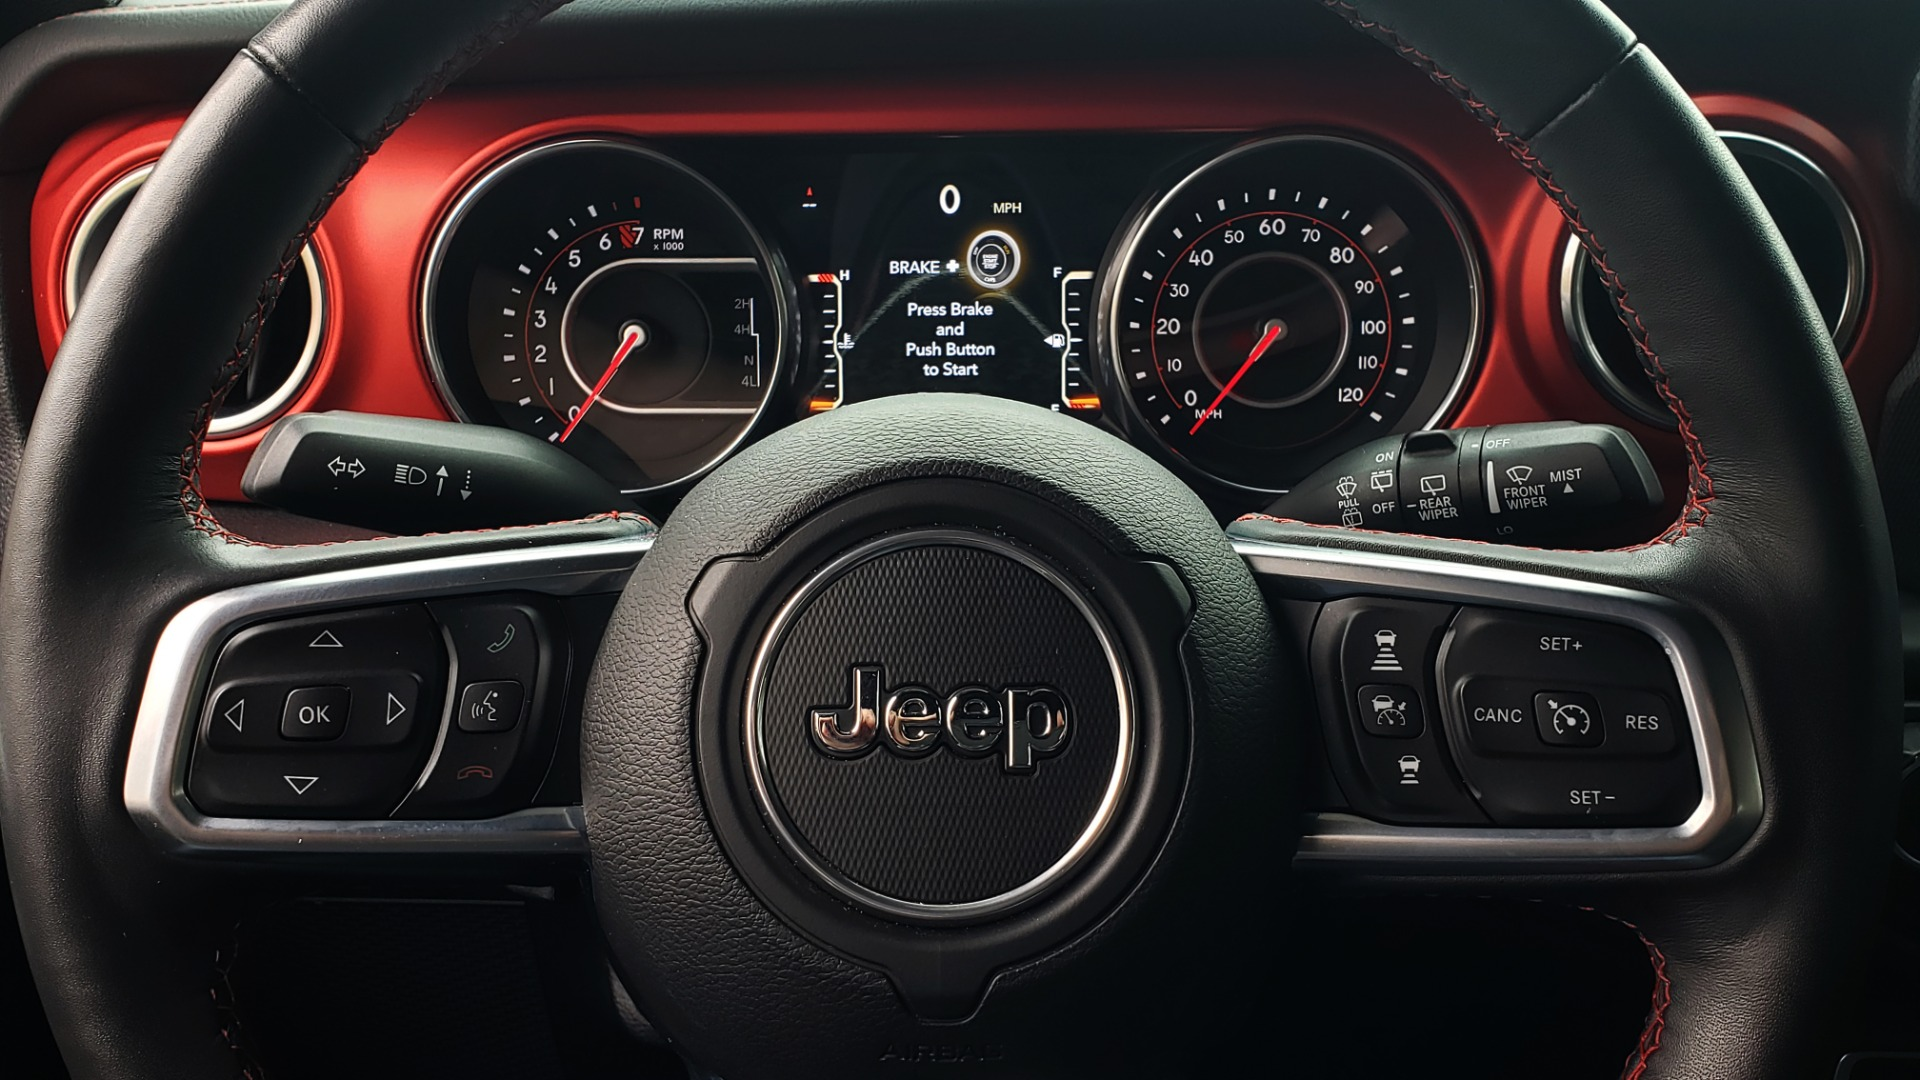 Used 2019 Jeep WRANGLER UNLIMITED RUBICON 4WD / V6 / 8-SPD AUTO / NAV / PWR TOP / REARVIEW for sale Sold at Formula Imports in Charlotte NC 28227 58